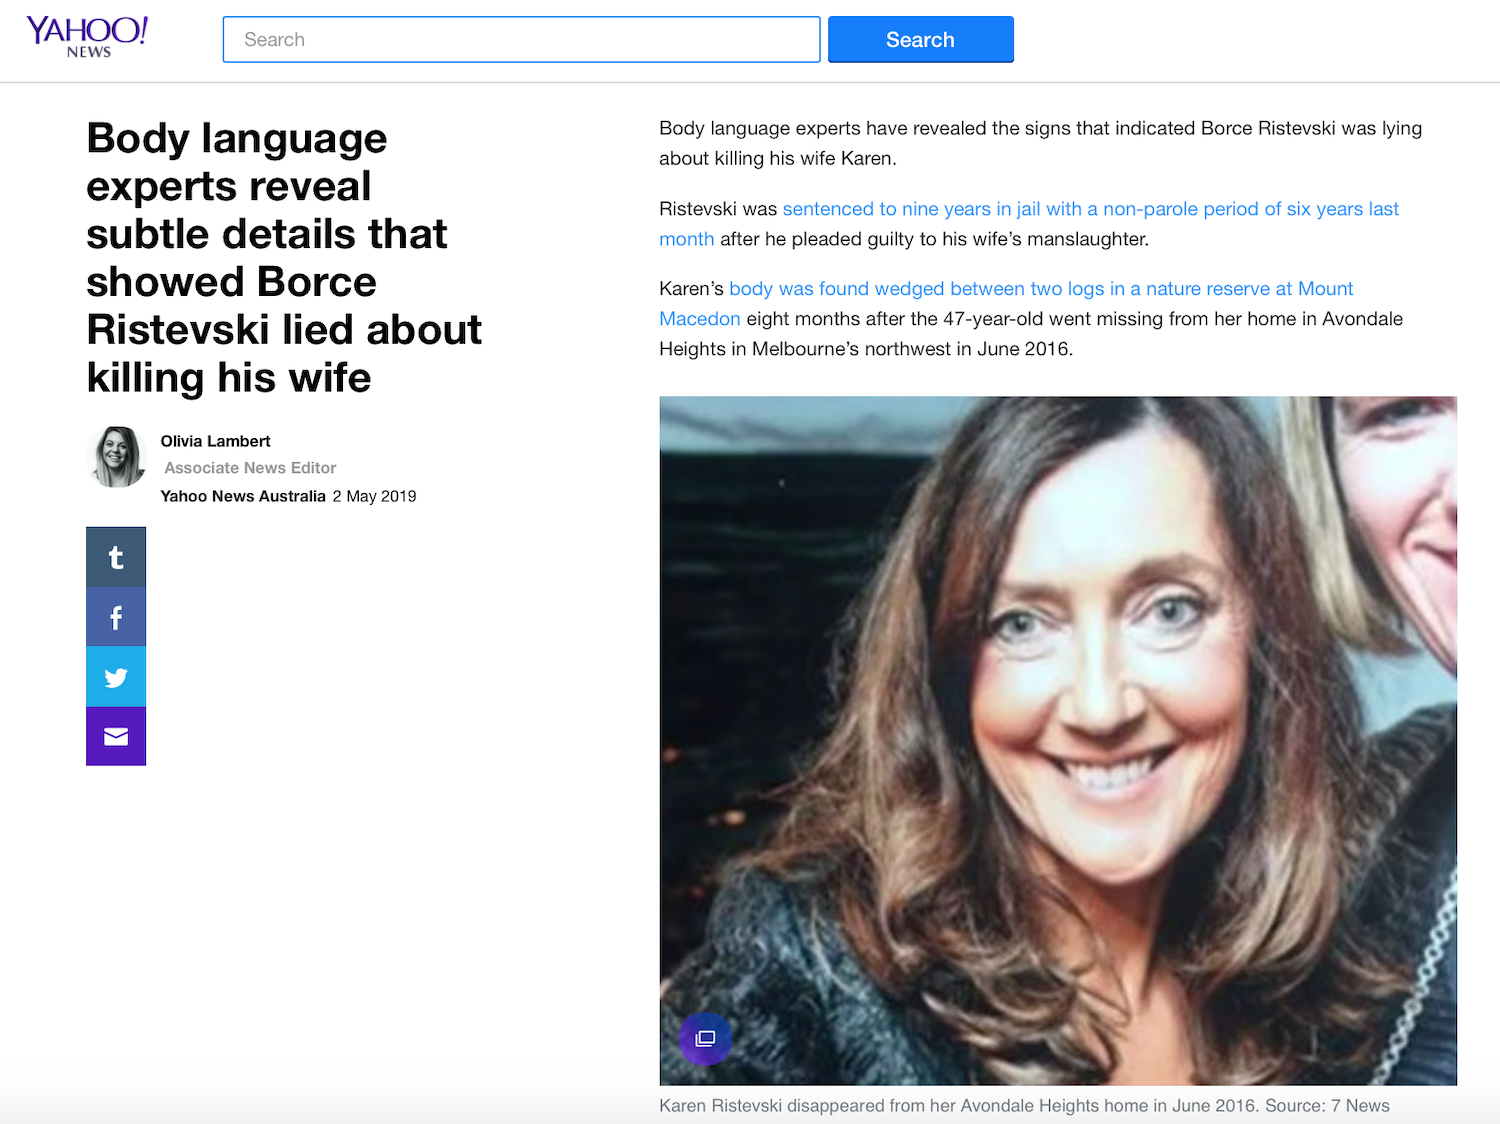 Body language experts reveal subtle details that showed Borce Ristevski lied about killing his wife